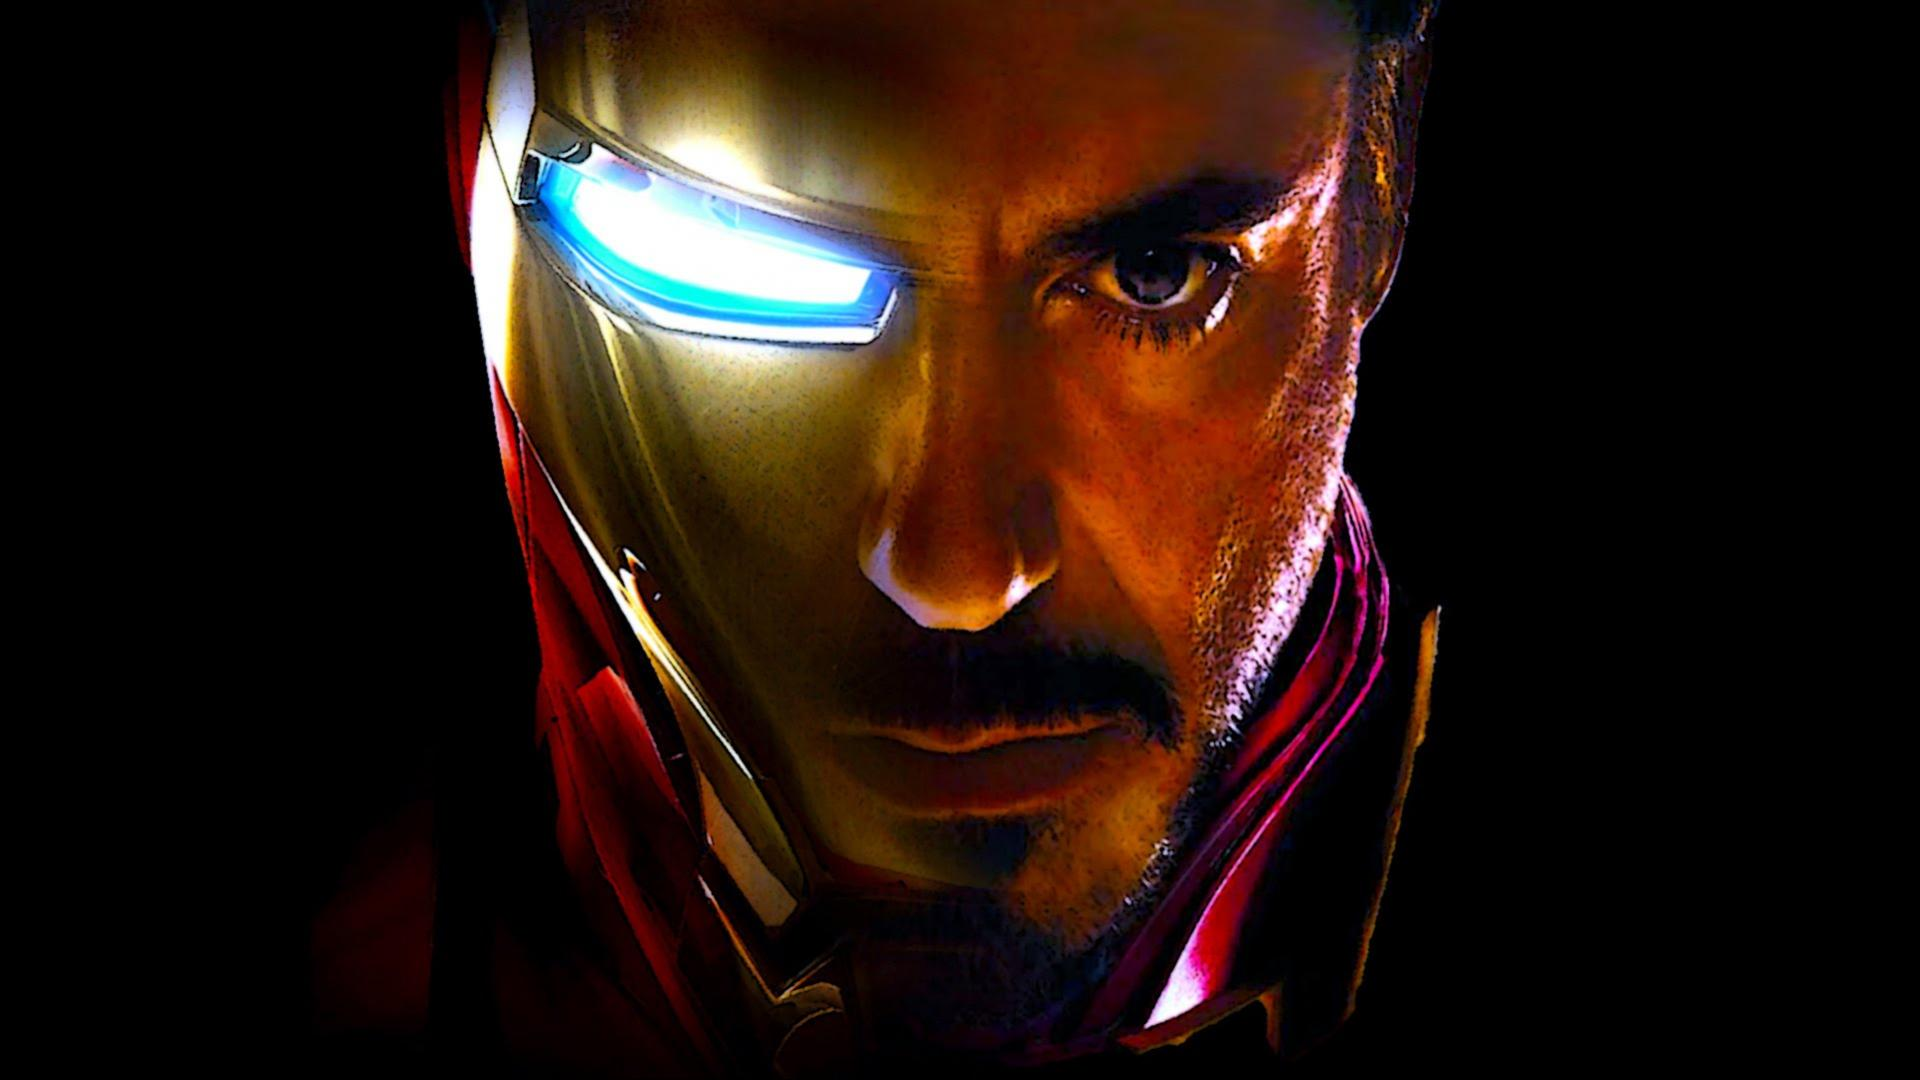 Iron Man Images Free Download: Iron Man Wallpaper With Face Images (37 Pics)